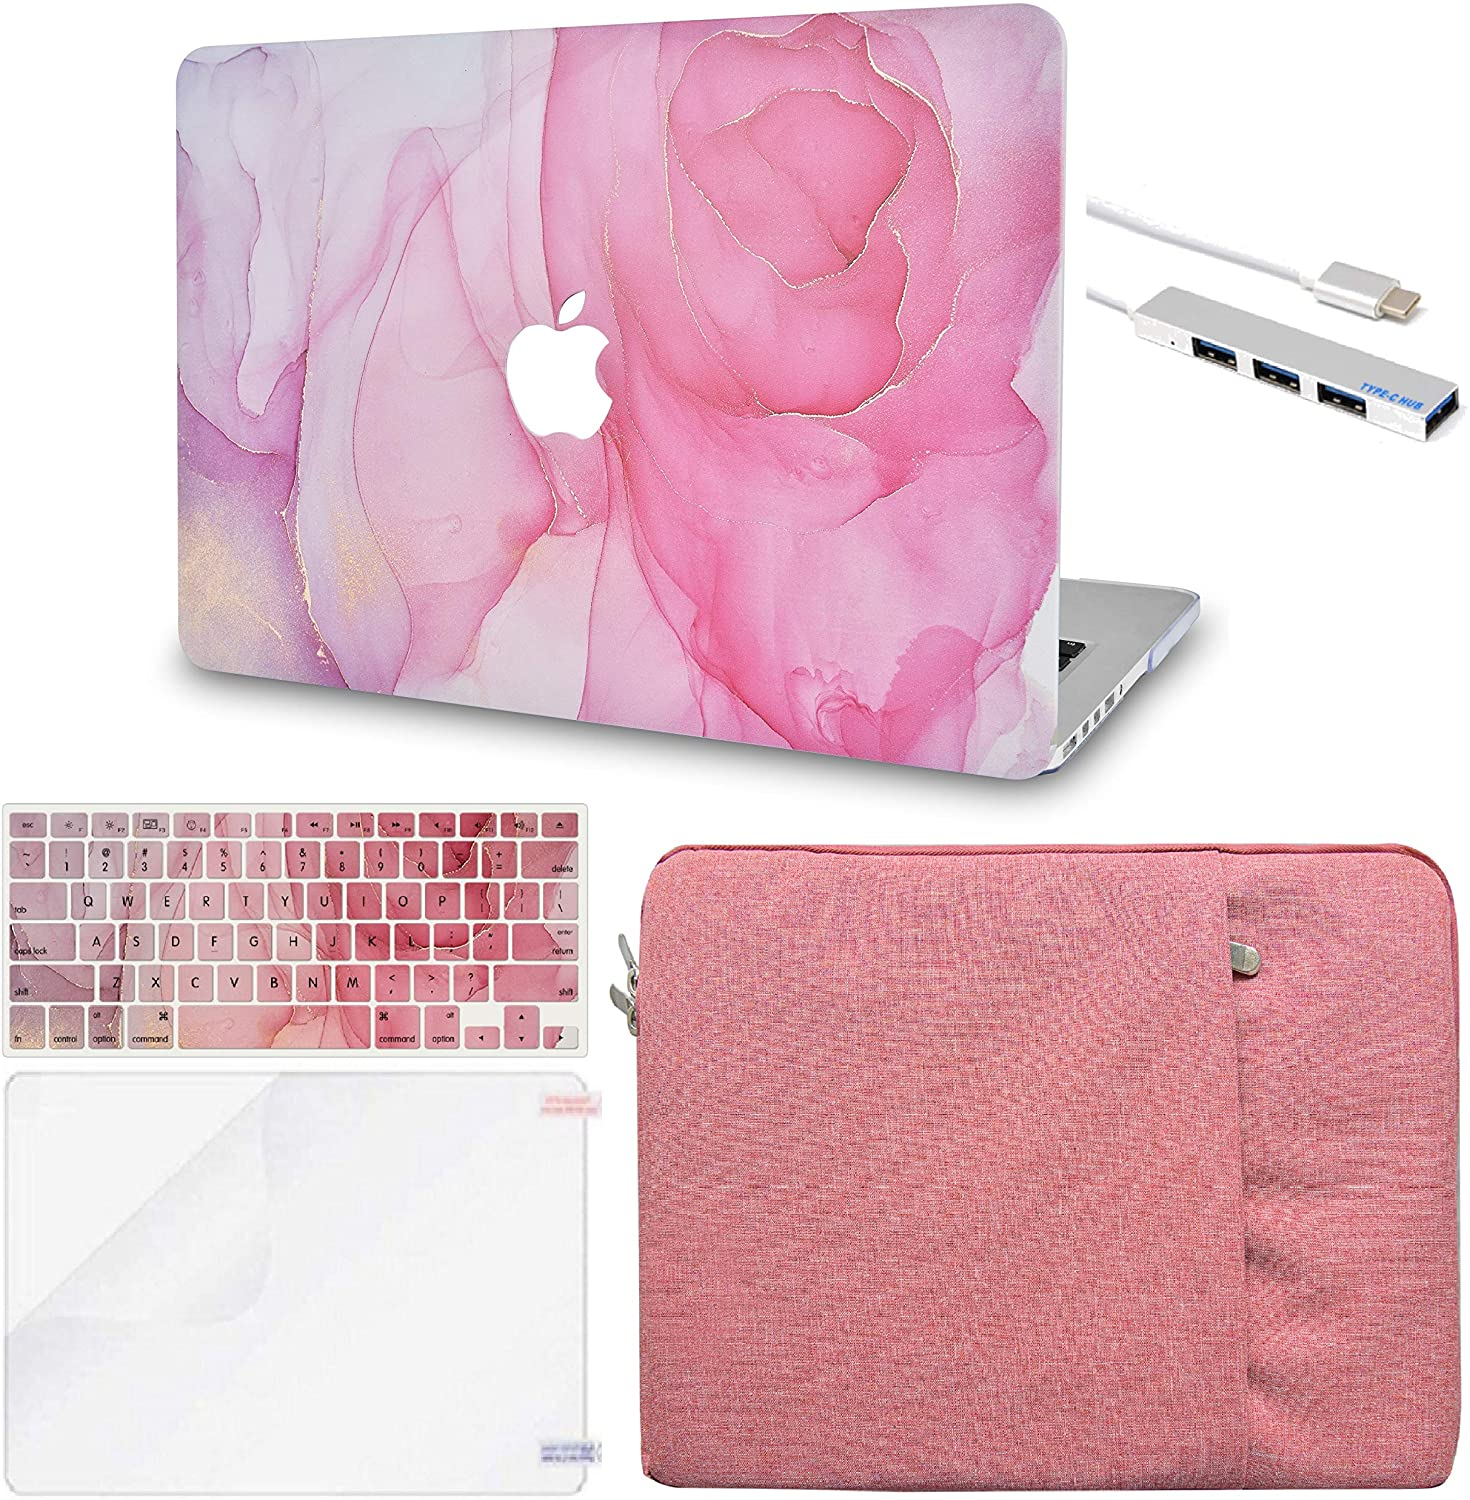 LuvCase 5in1 LaptopCase for MacBook Air 13 InchA1466 / A1369 (No Touch ID)(2010-2017) HardShellCover, Sleeve, USB Hub 3.0, Keyboard Cover&Screen Protector (Rose Marble)